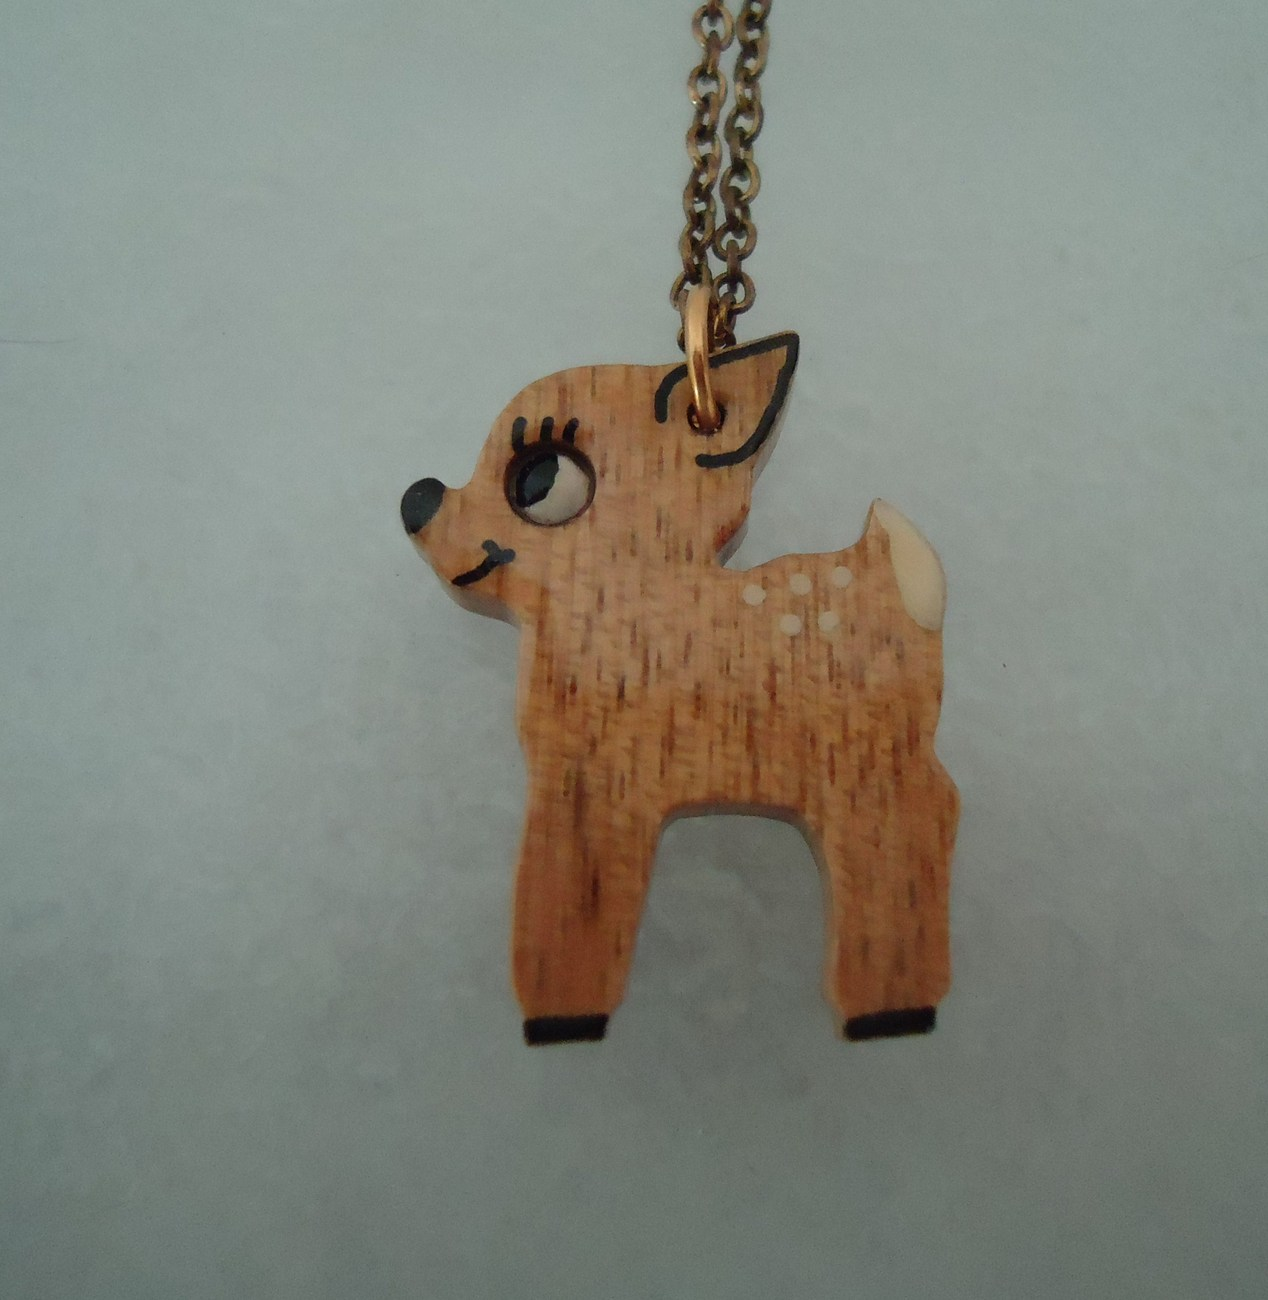 Primary image for Wooden Handcrafted Handpainted Bambi Fawn Pendant